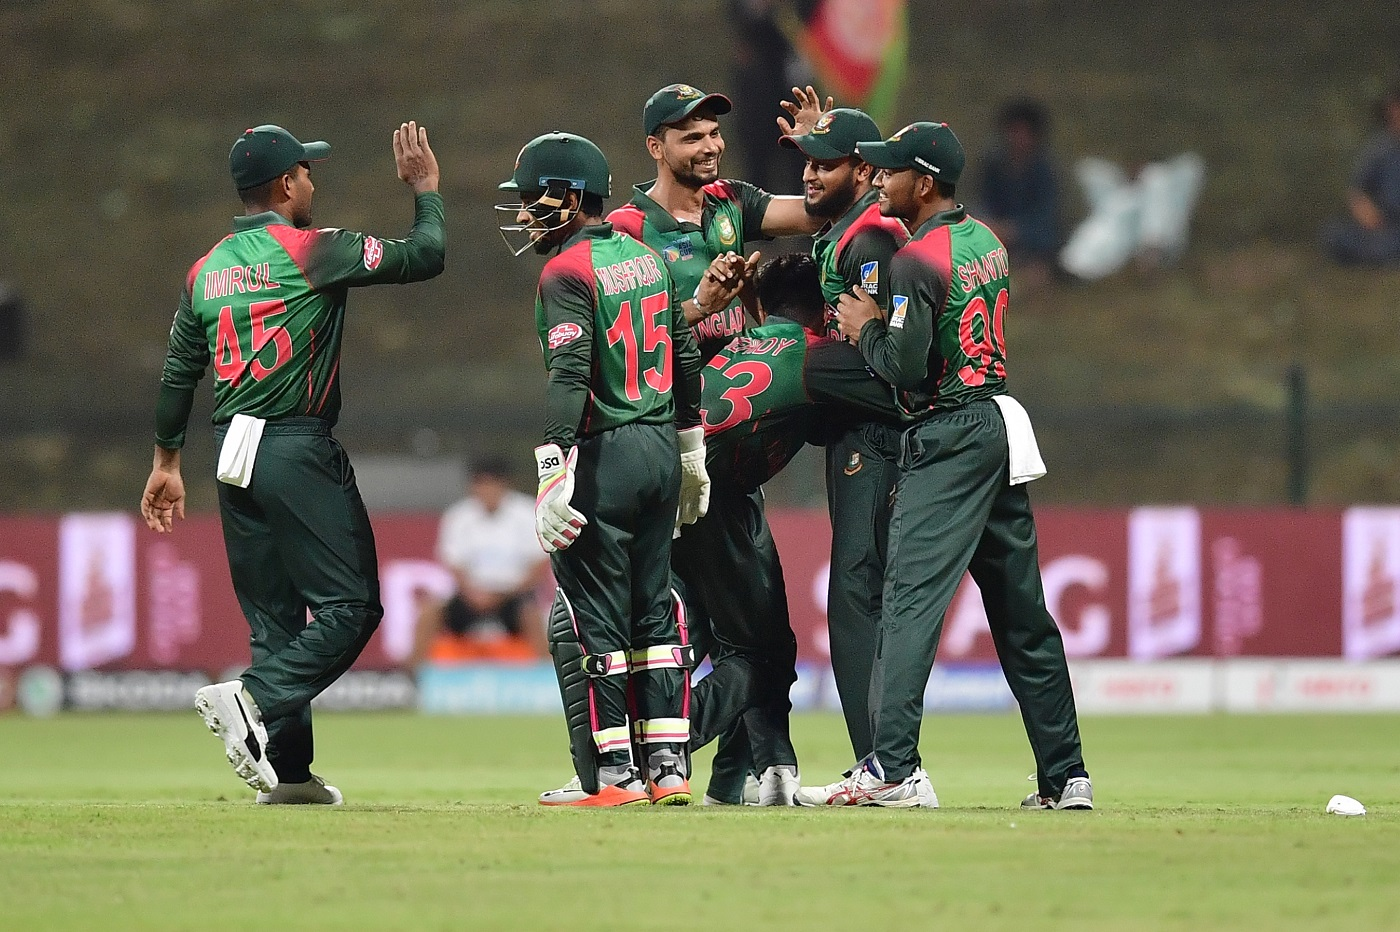 Bangladesh narrowly defeat Afghanistan by 3 runs in thrilling encounter in the Asia Cup